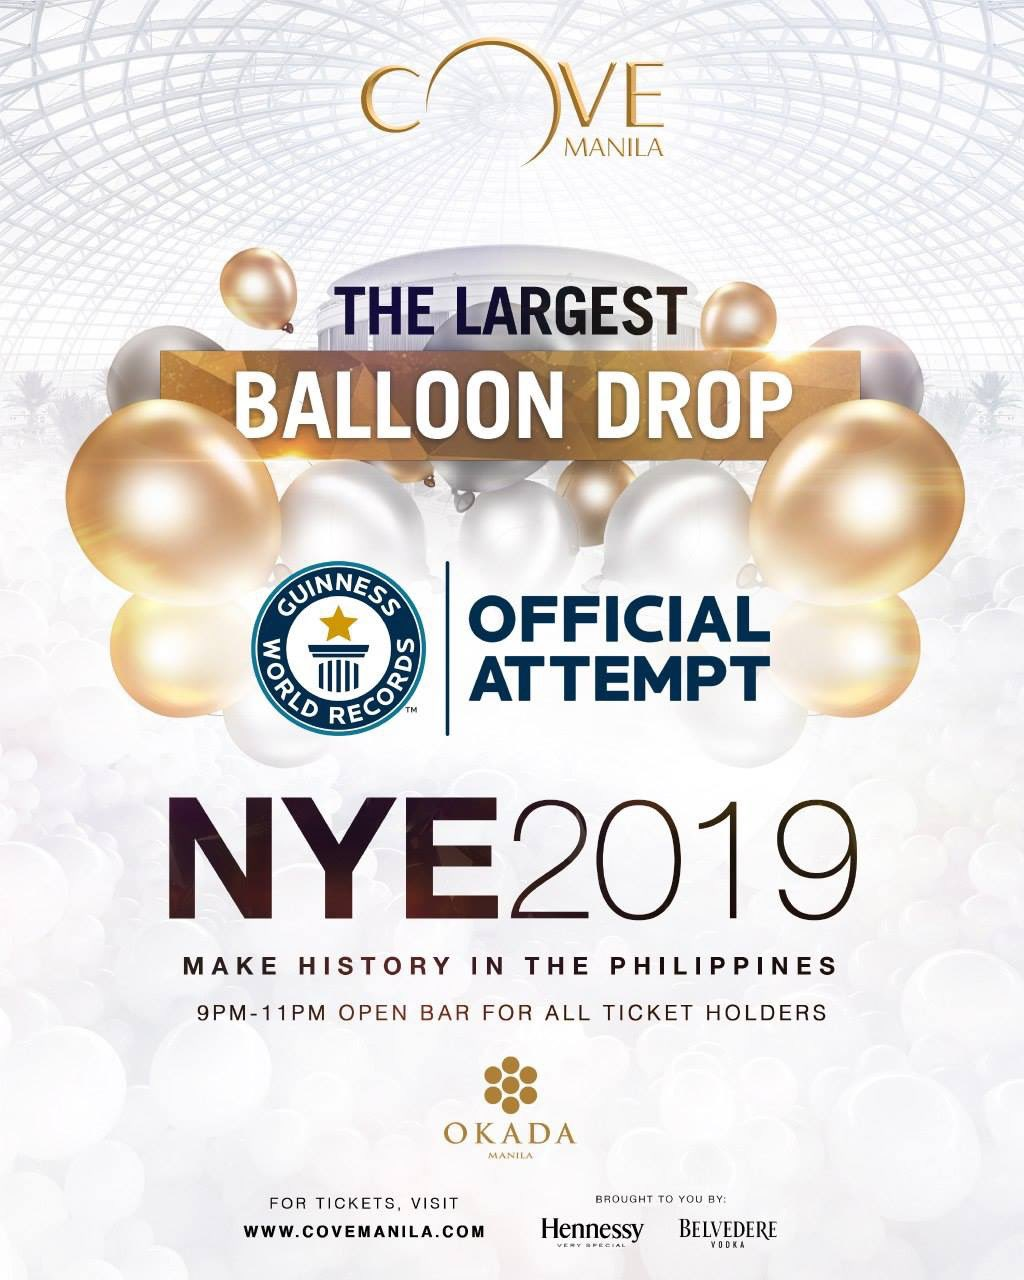 DENR orders Cove Manila to stop balloon drop event or face charges